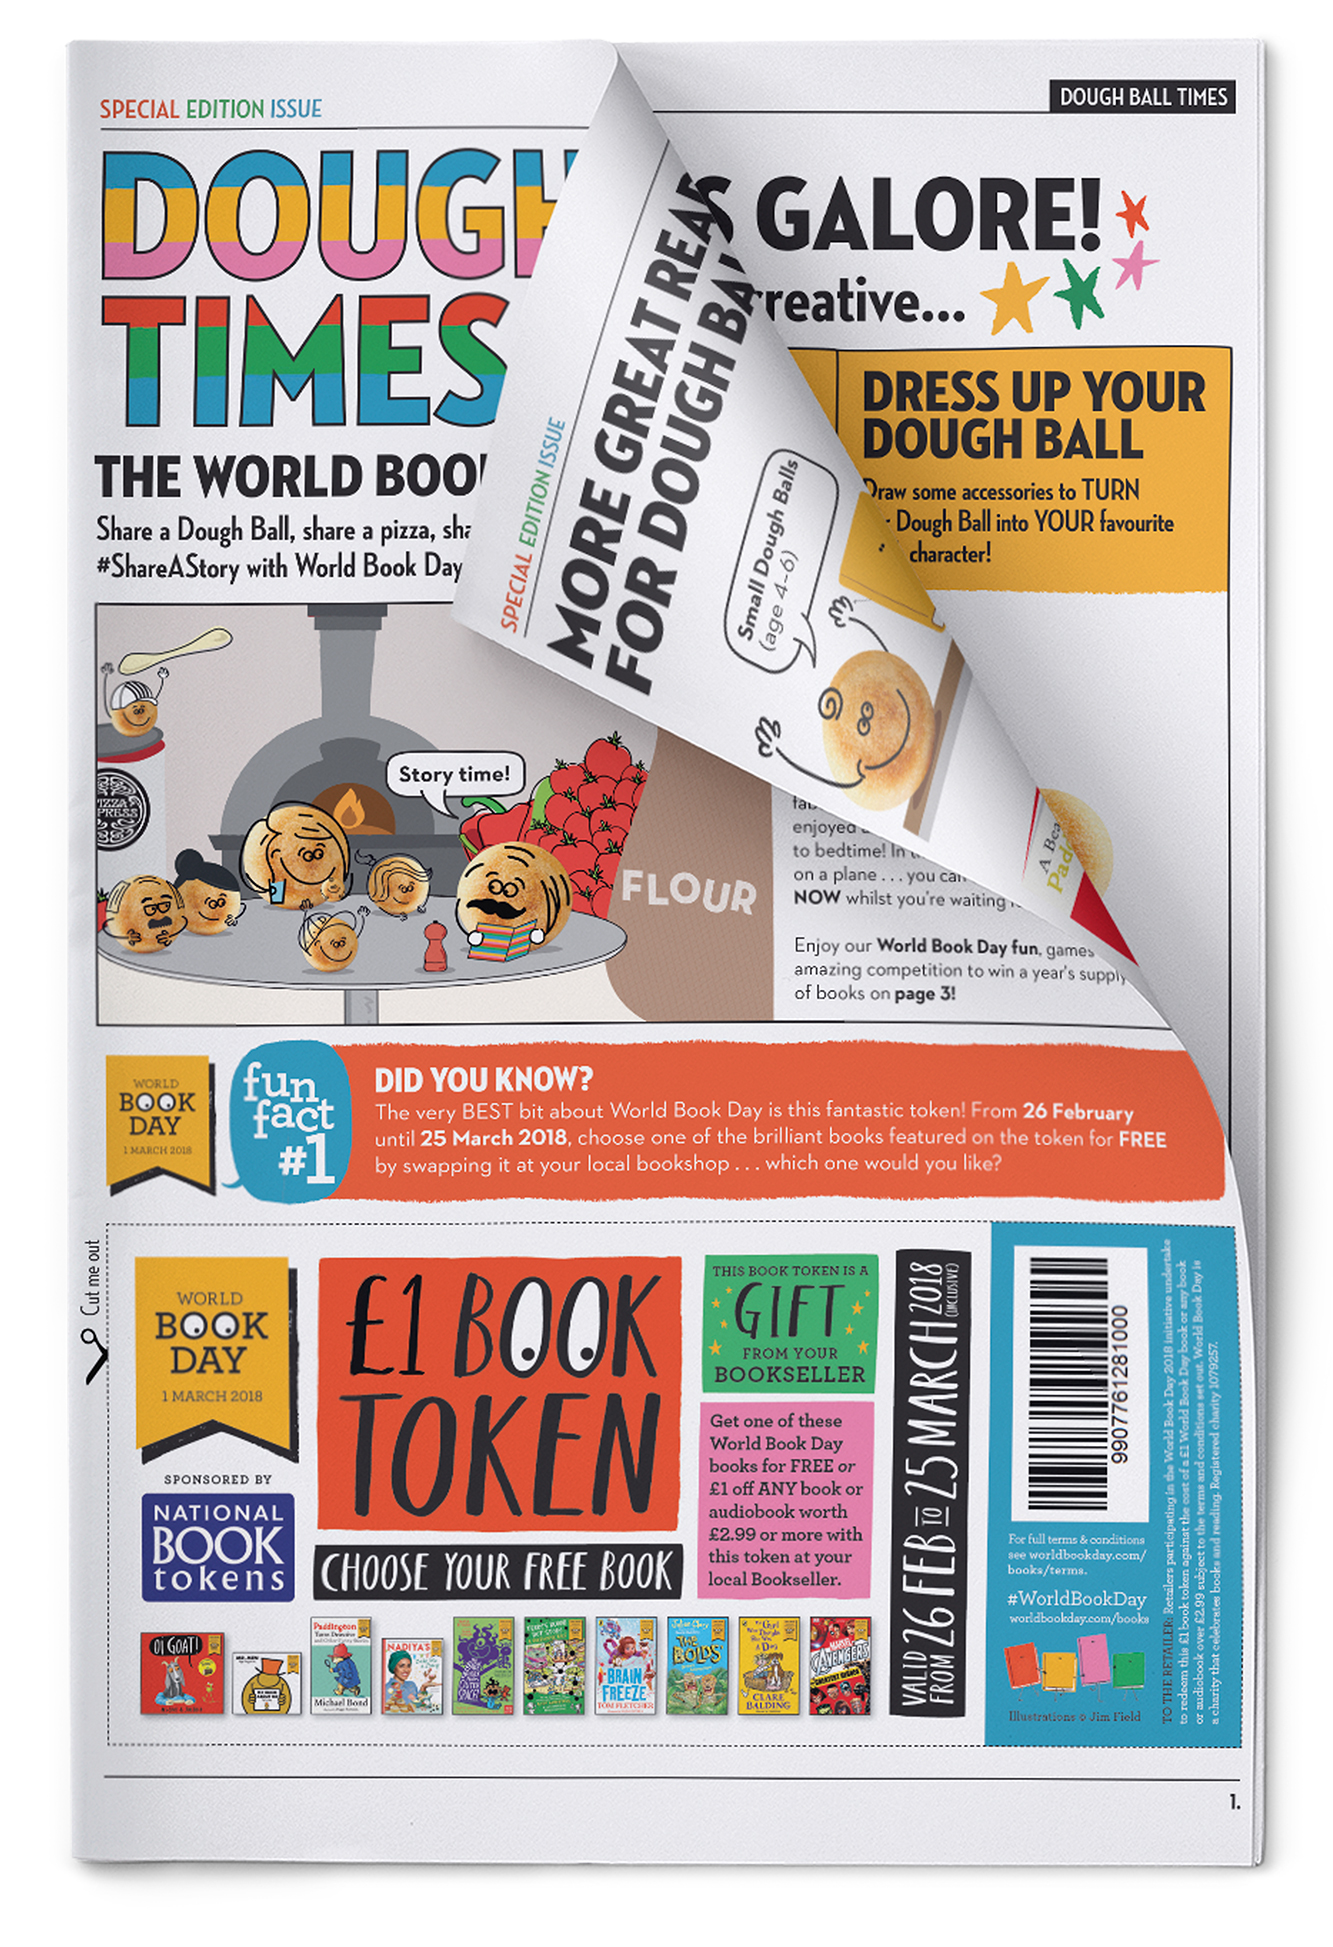 Pizza Express World Book Day Doughball Times News Paper Brand Partnership Sales Promotion